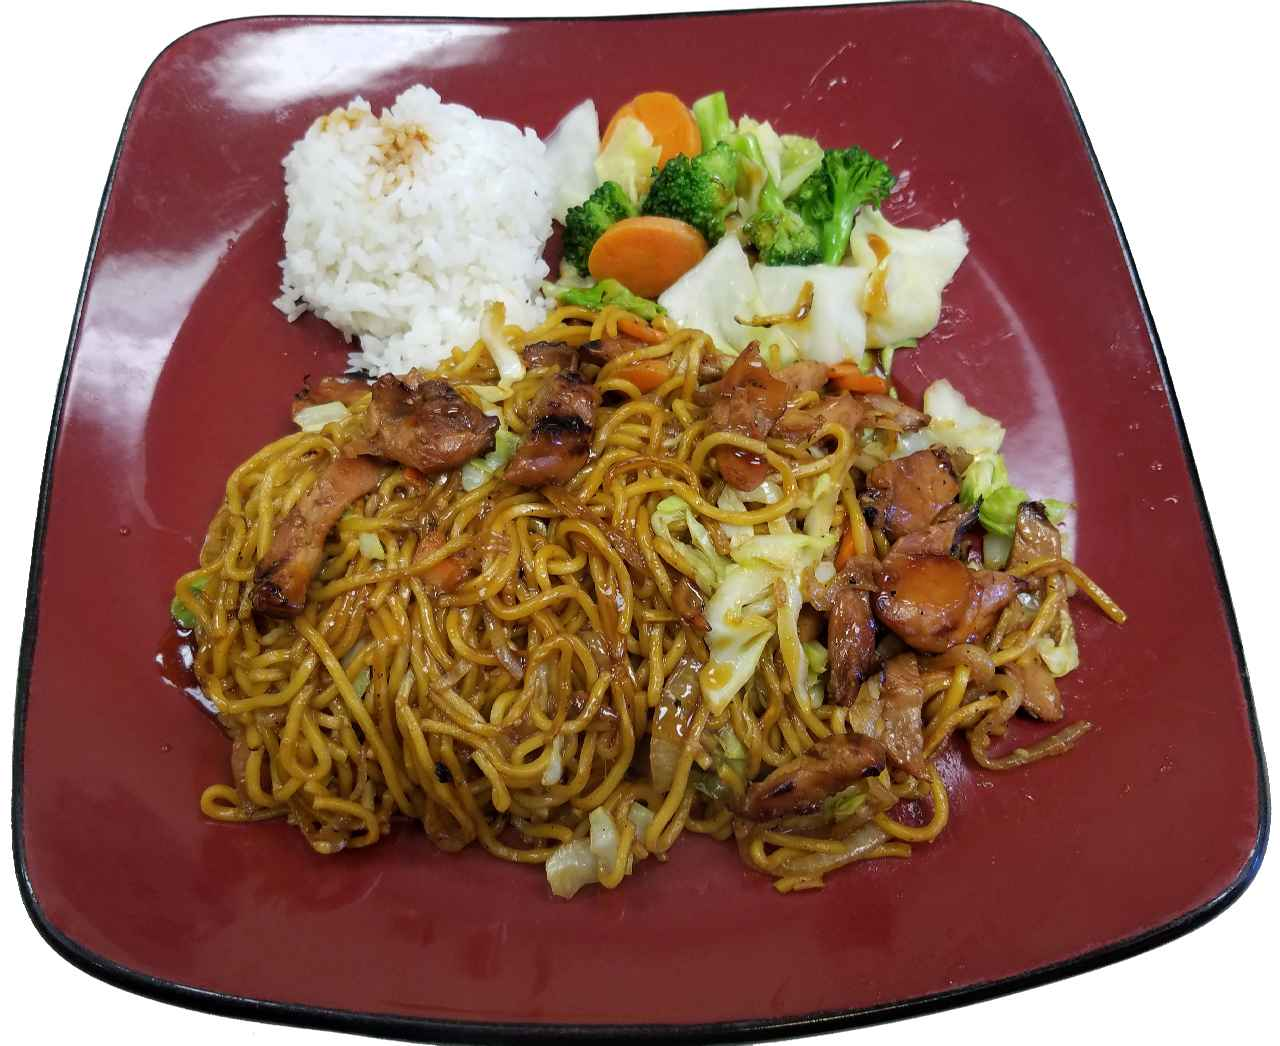 92. Lunch Special – Chicken Veggie Yakisoba